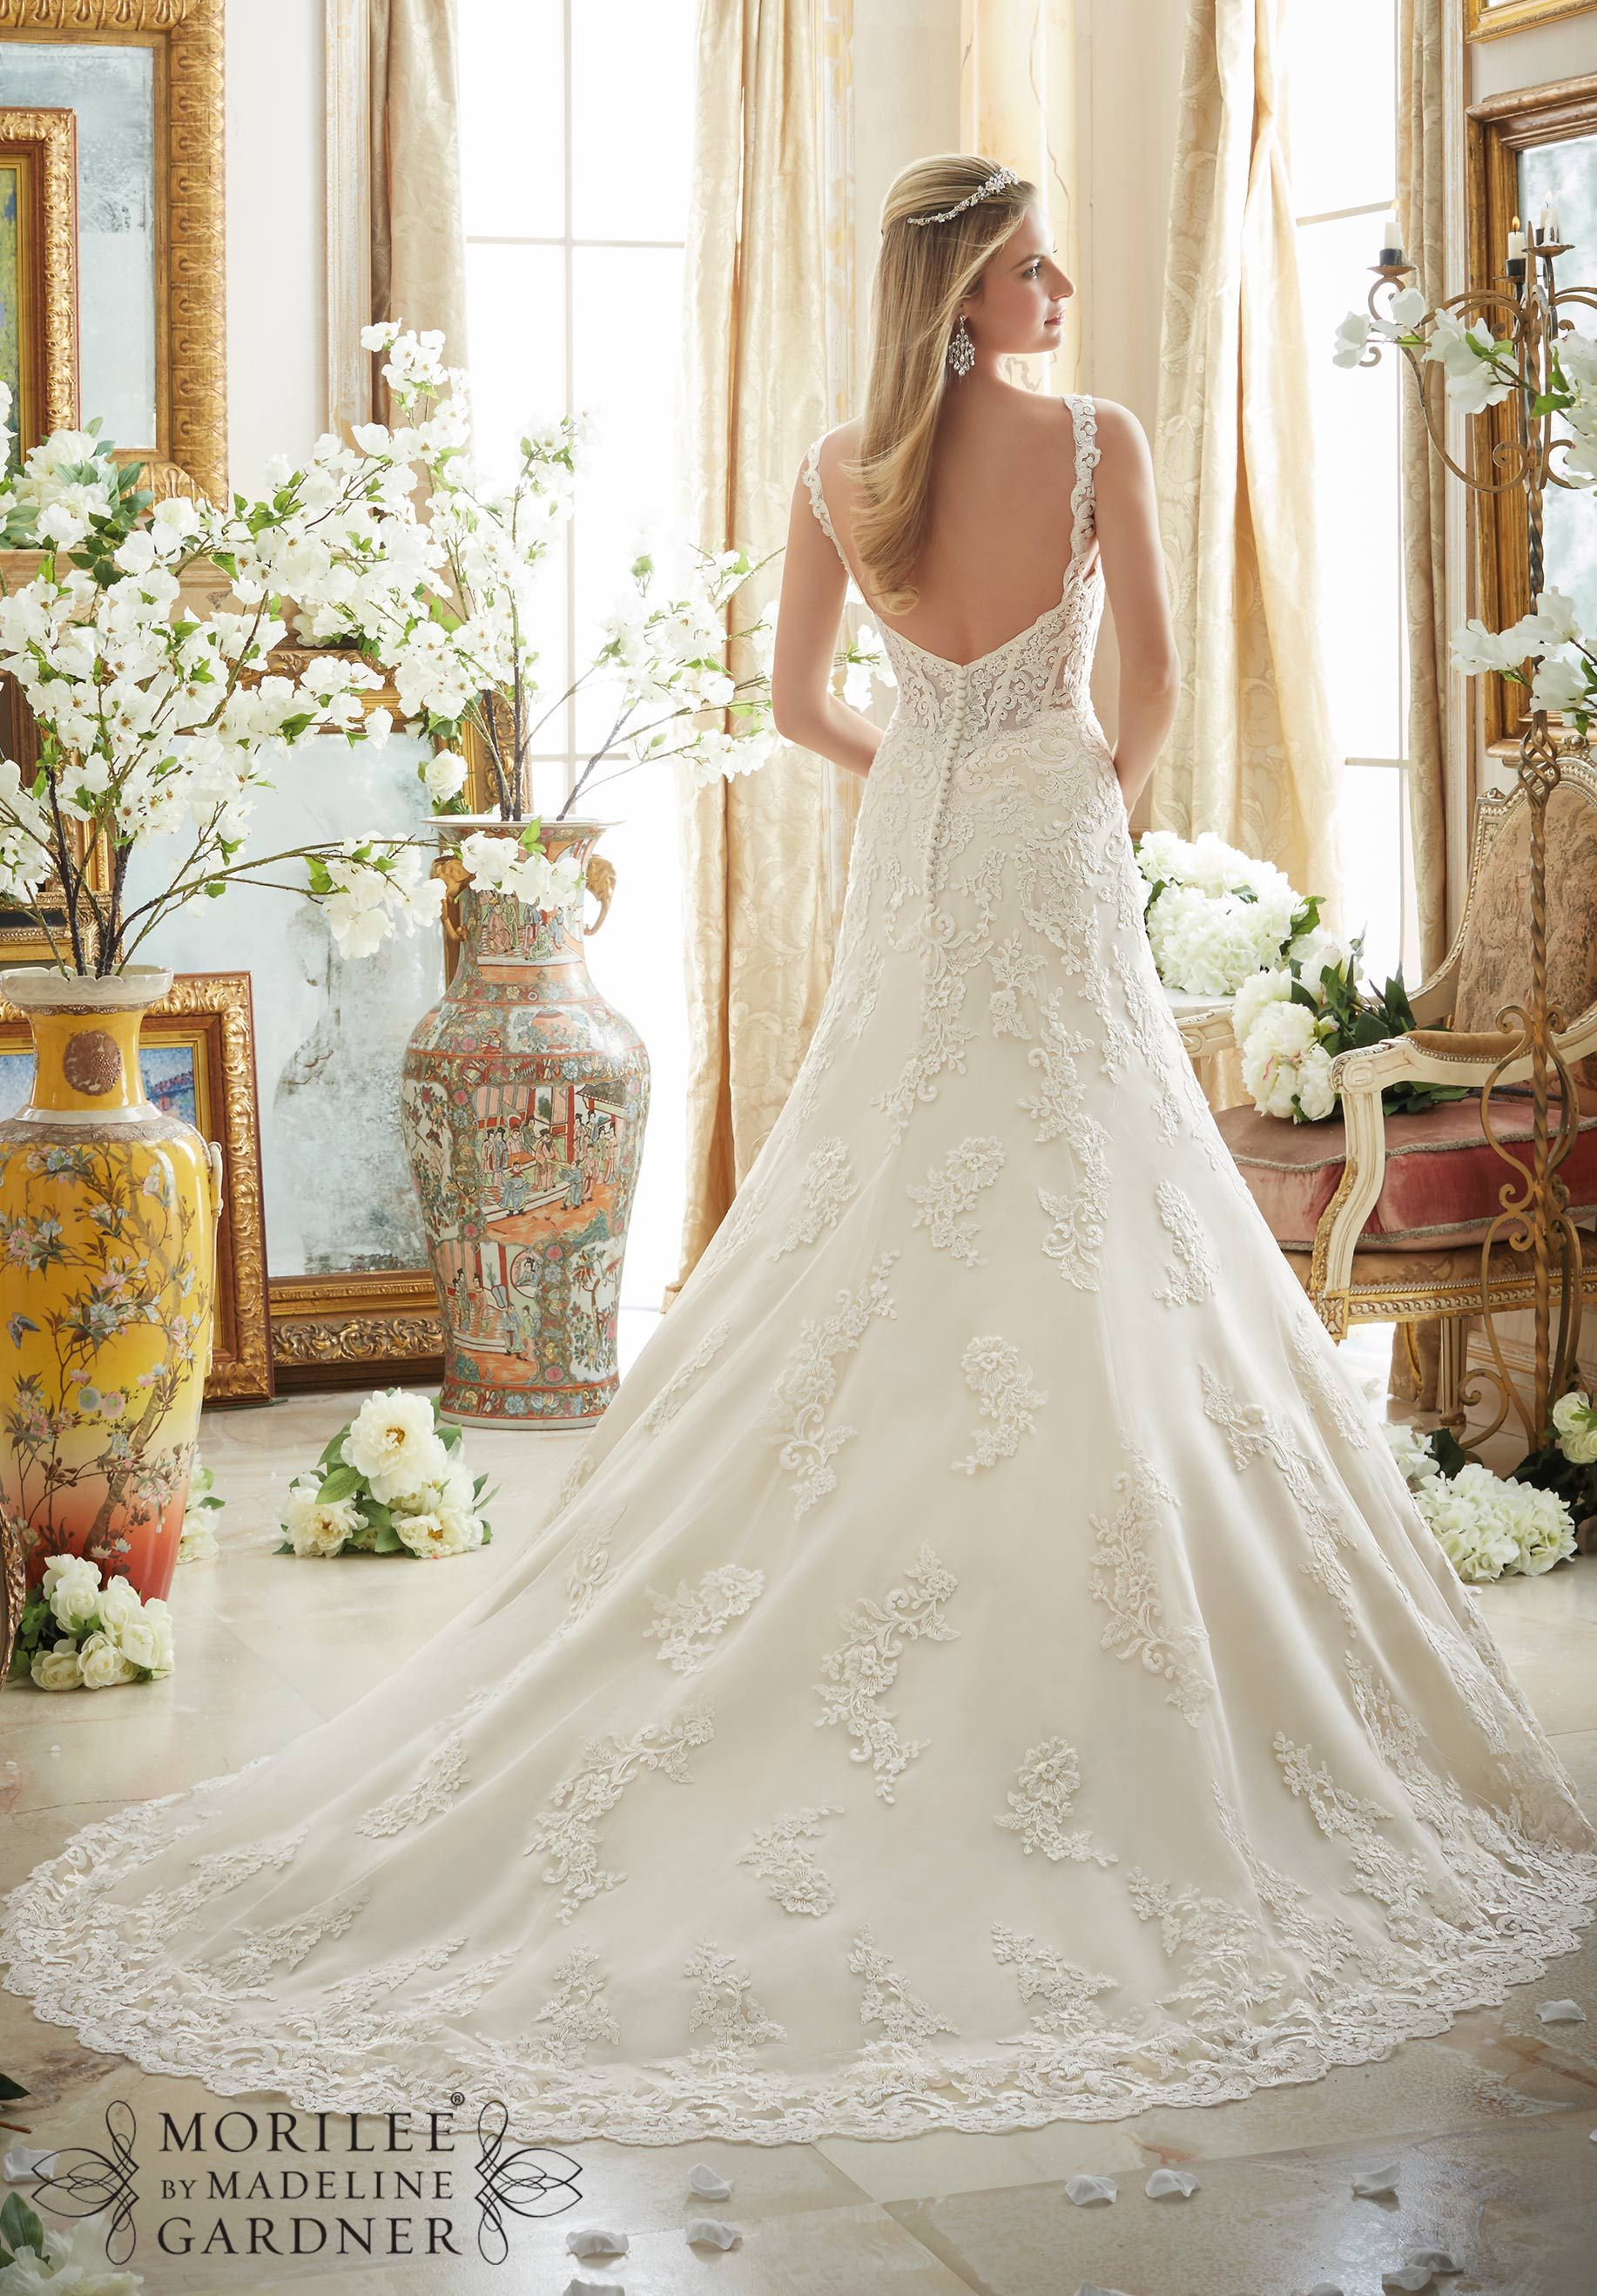 Embroidered lace wedding dress  Wedding Dress  Embroidered Lace Appliques on Tulle with Wide